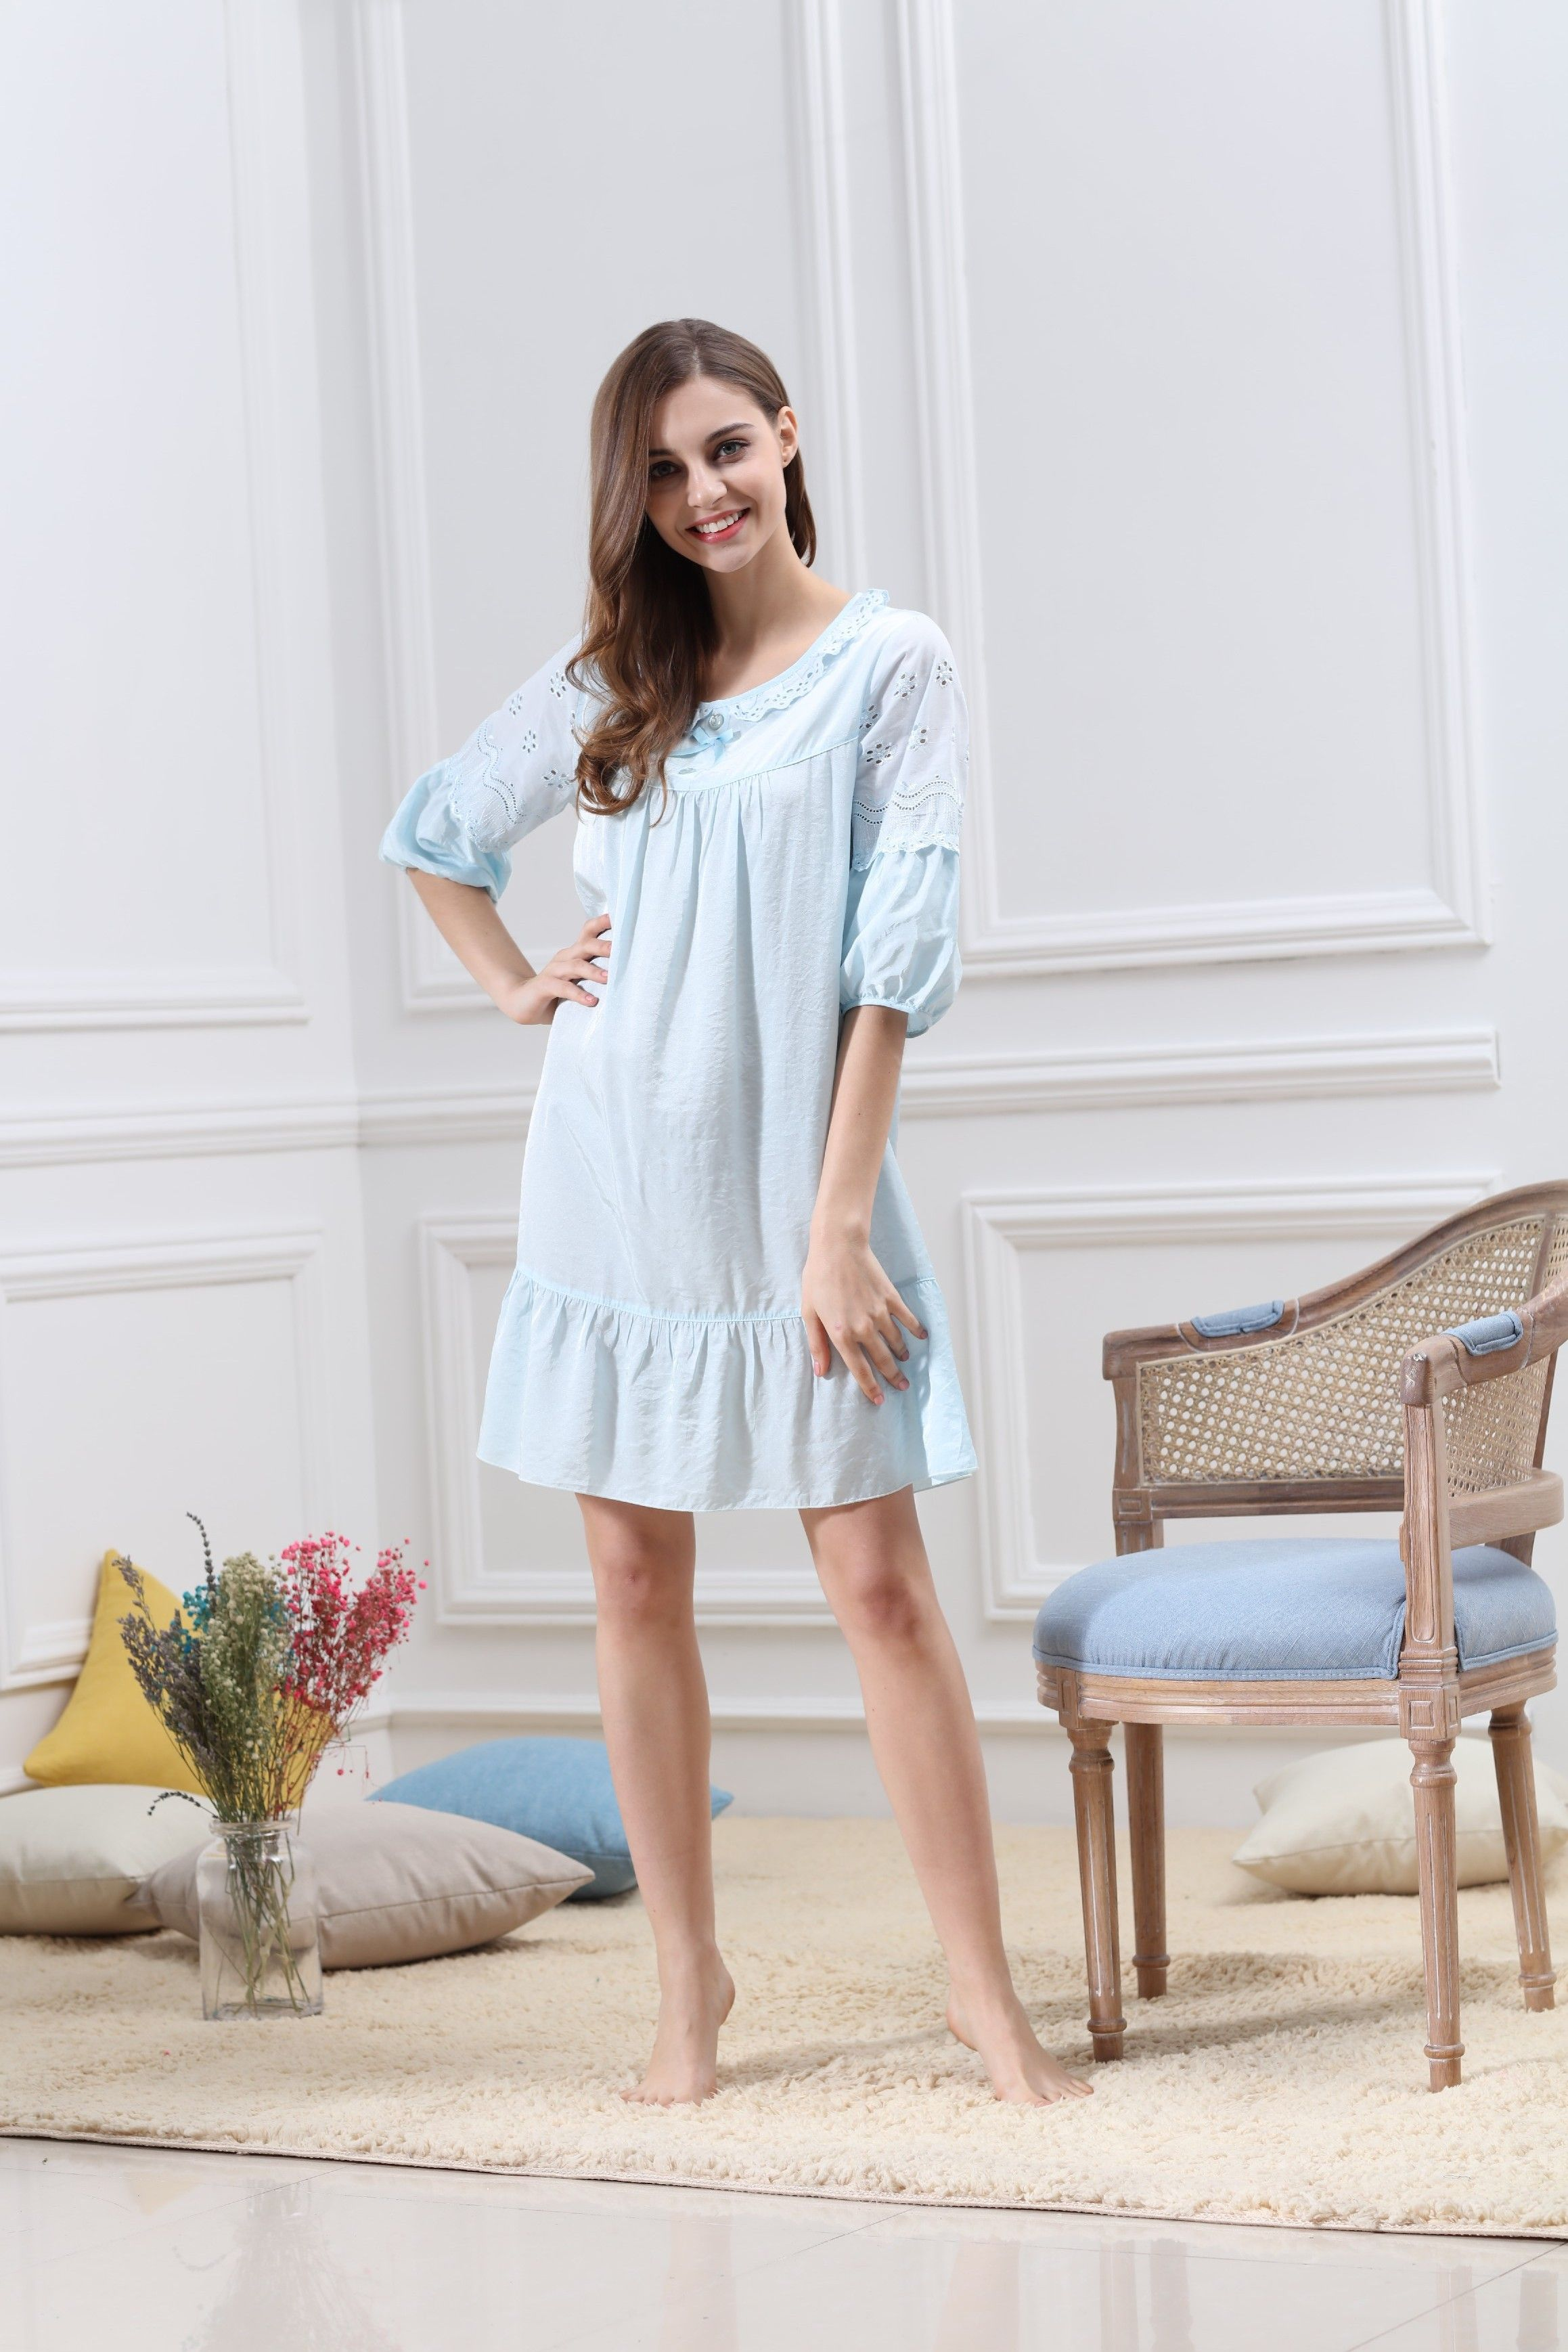 8d85deae6a  Cotton  Sleepwear  Skirt  vDress  HomeService  Soft  Bedwear   FivePointsSleeves  Lace  Sweet  NightGown  PrincessStyle